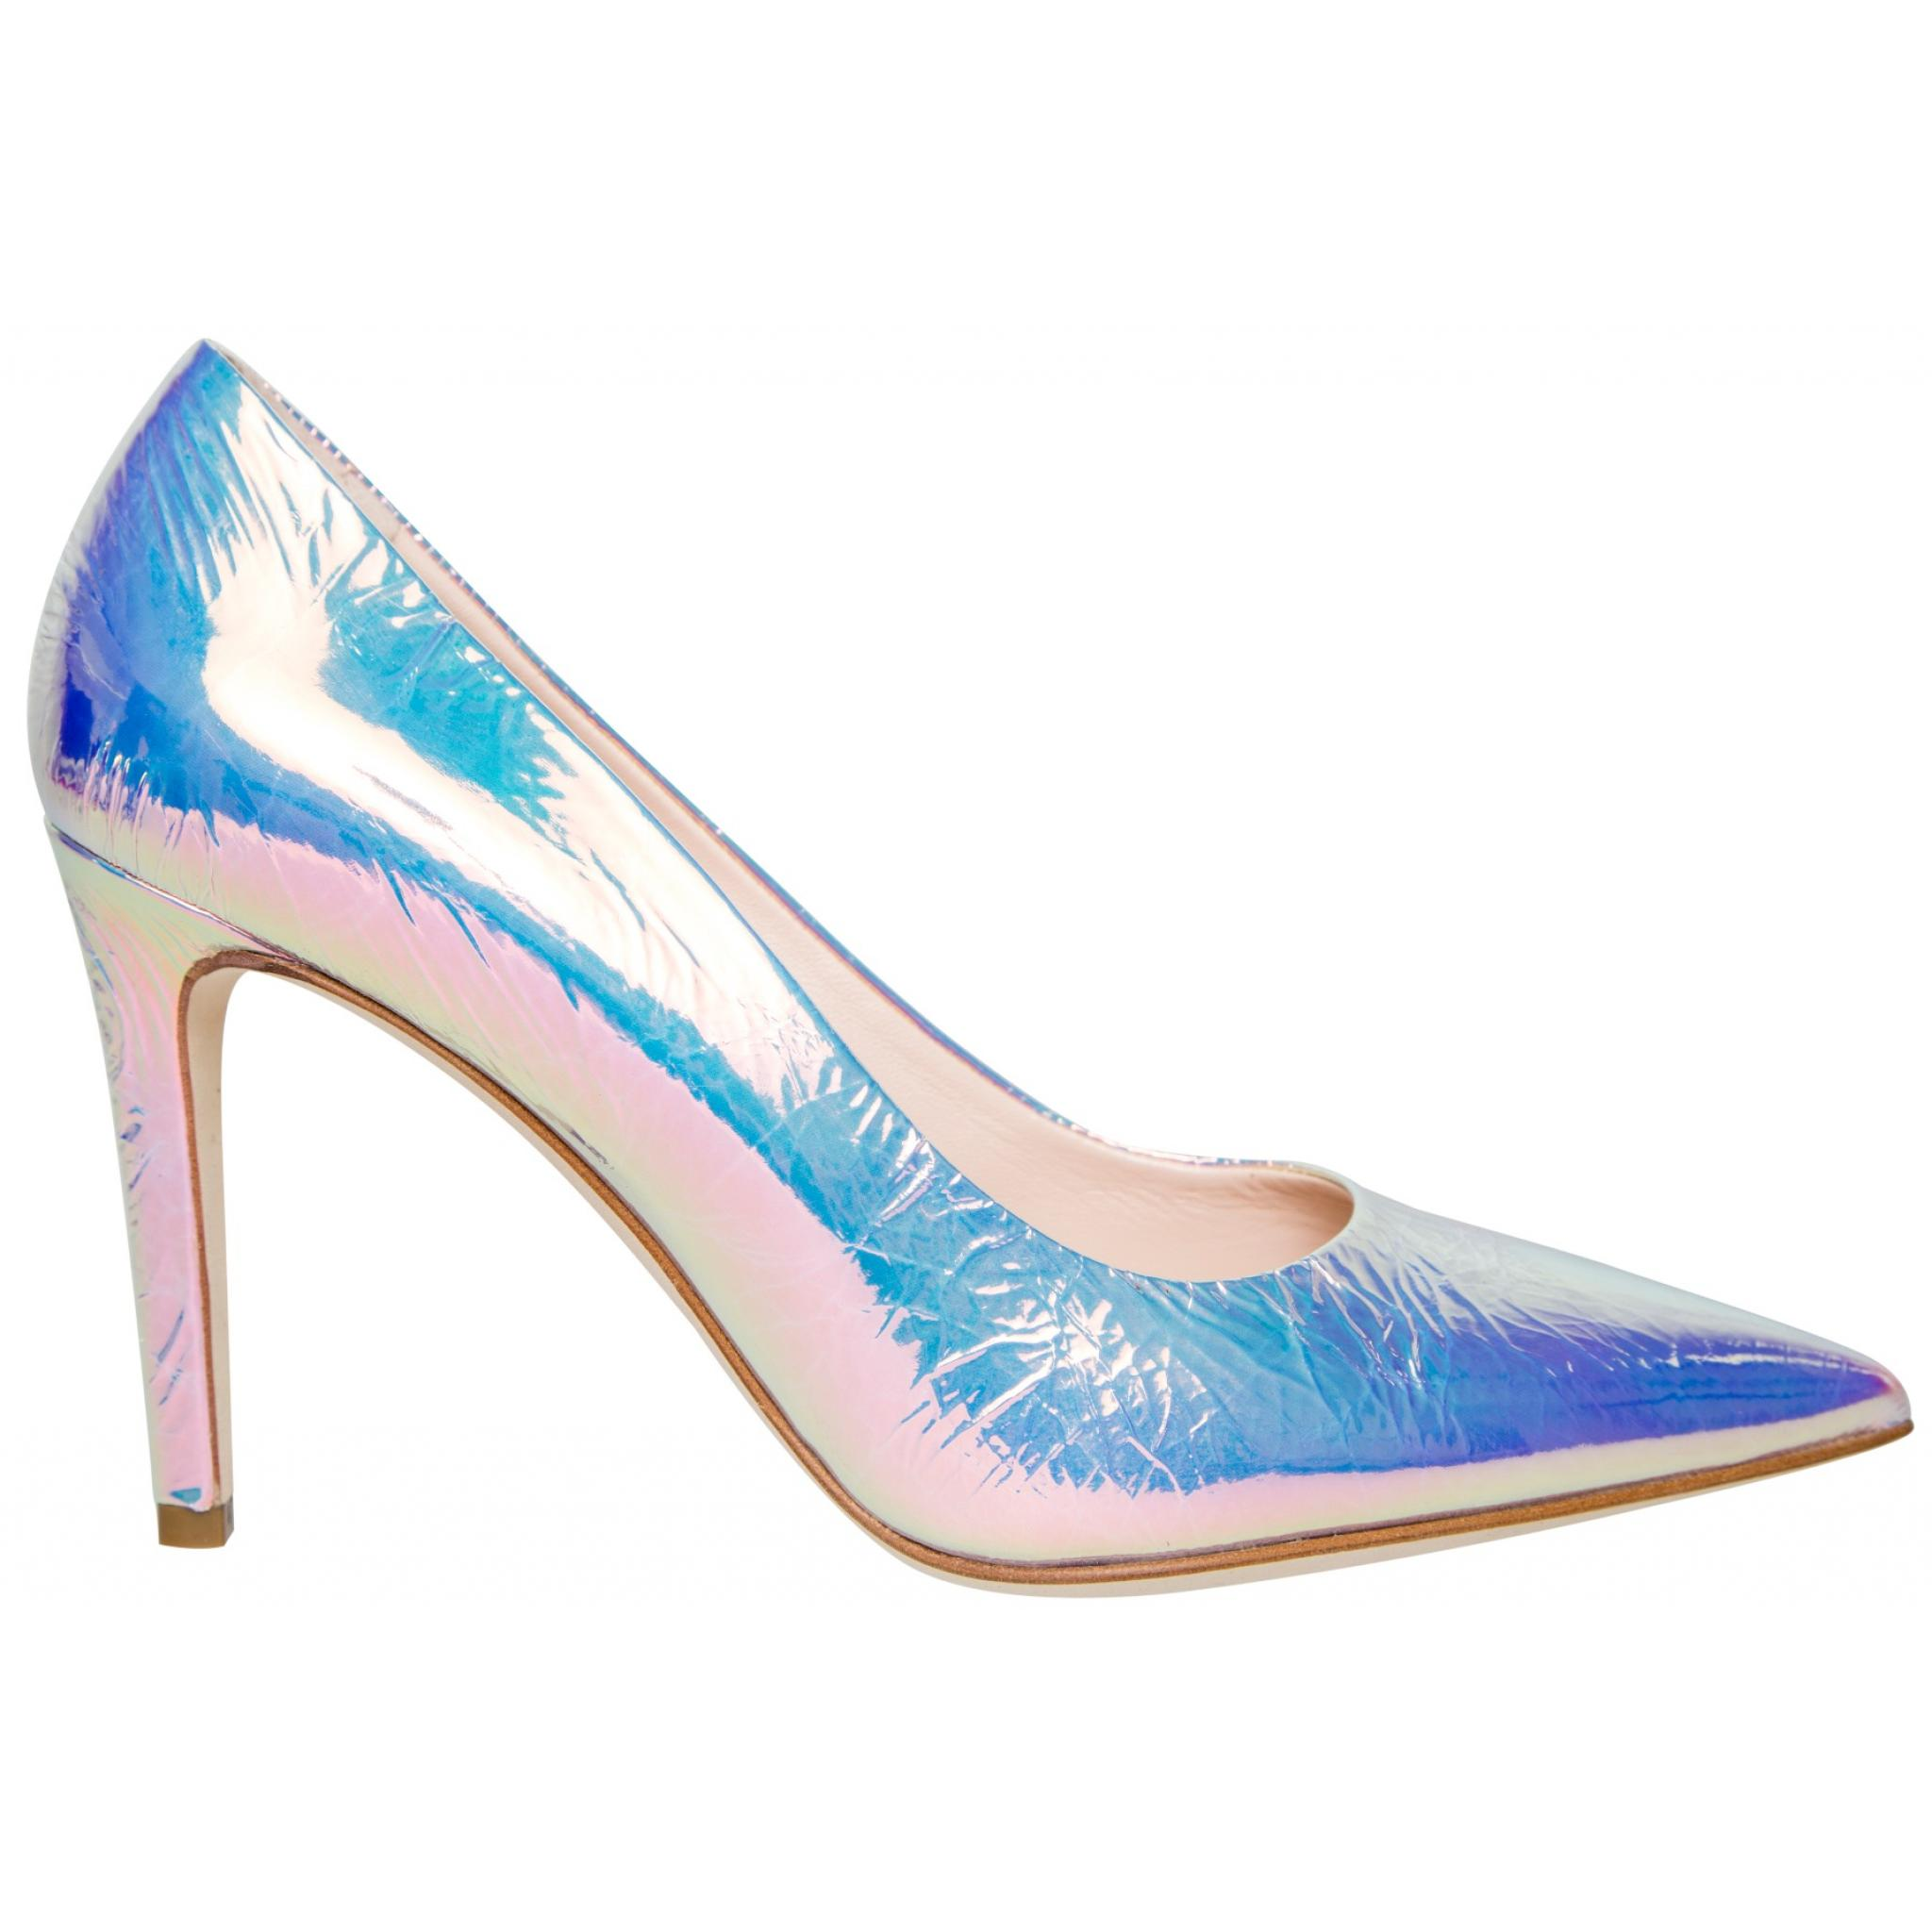 Irisierende Metallicleder-Pumps mit High-Heel-0